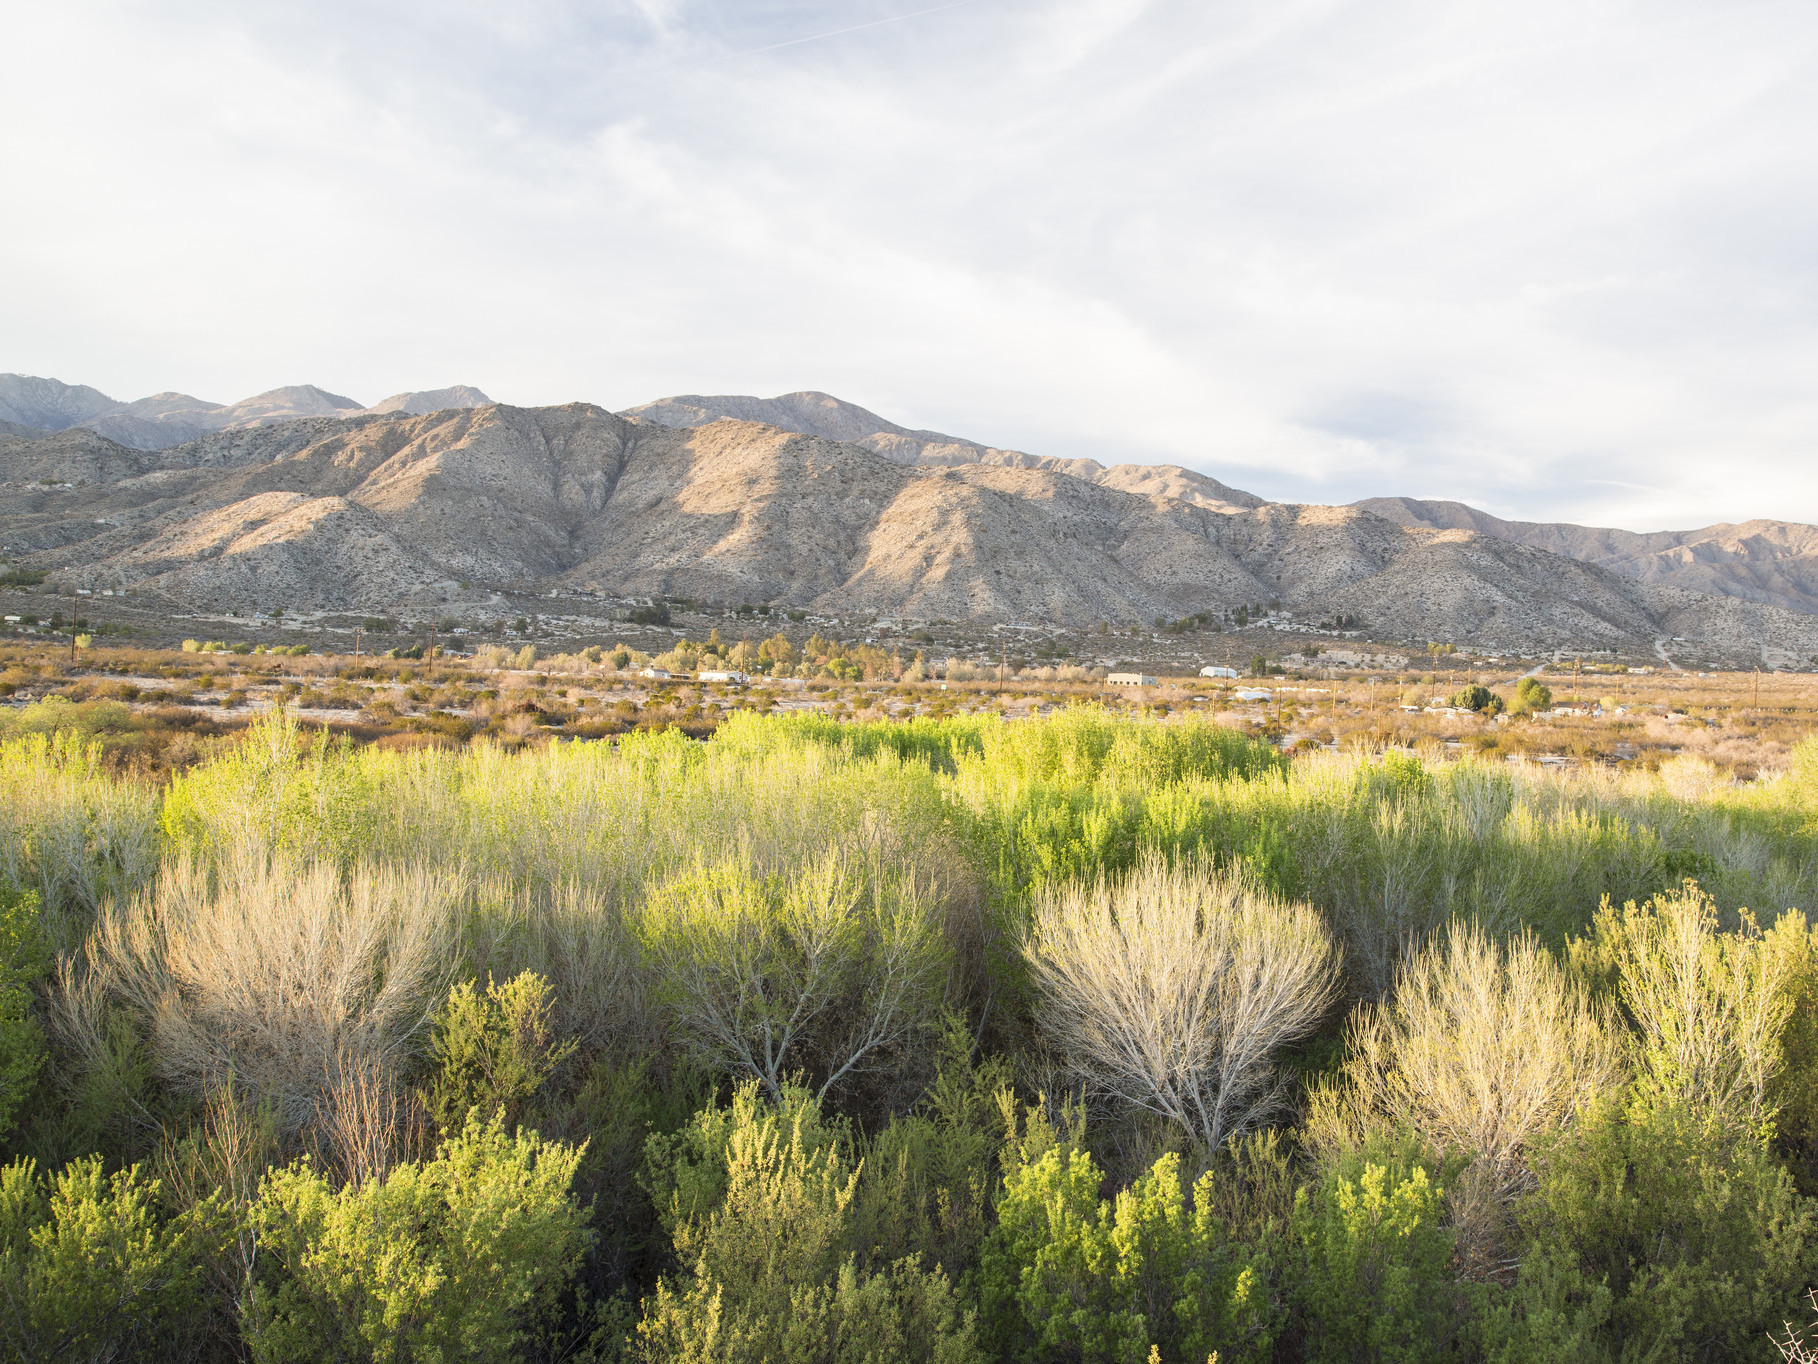 The Sand to Snow National Monument is one of three California areas designated as national monuments on Friday. Together they protect nearly 1.8 million acres of public lands.